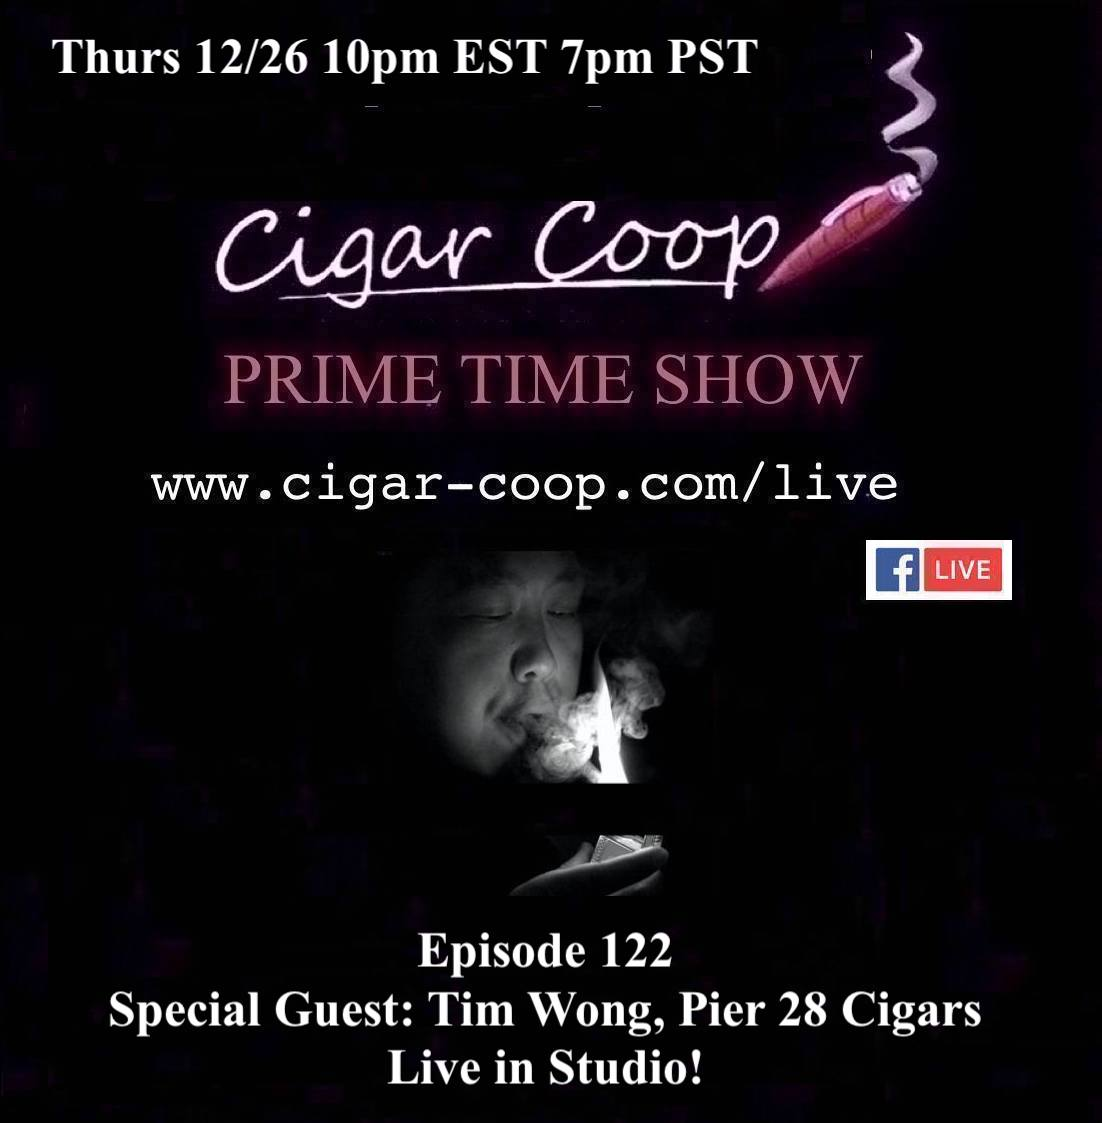 Announcement: Prime Time Episode 122 – Tim Wong, Pier 28 Cigars